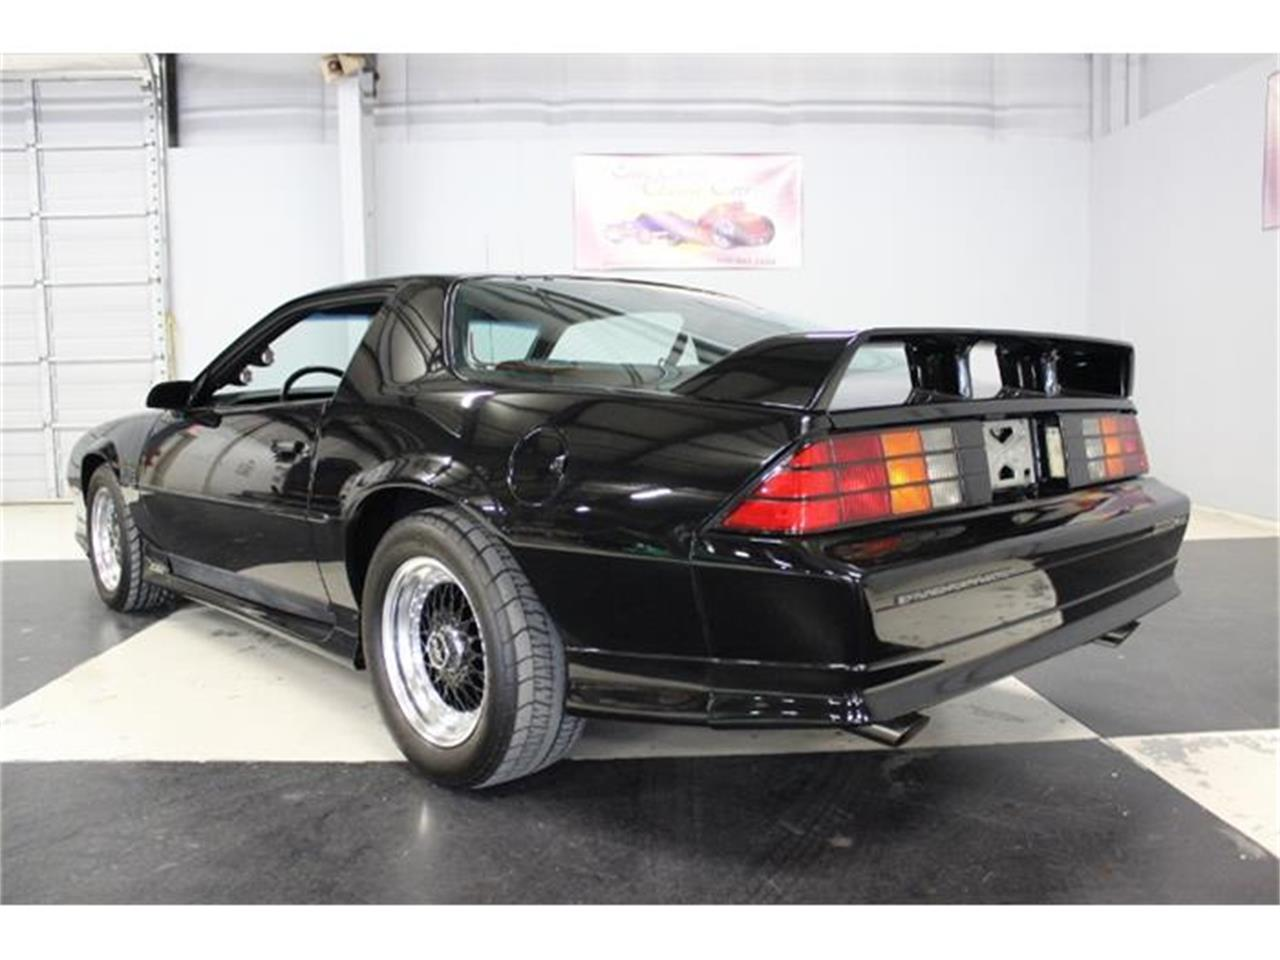 Large Picture of 1991 Chevrolet Camaro Z28 located in North Carolina - $52,000.00 Offered by East Coast Classic Cars - GPGQ